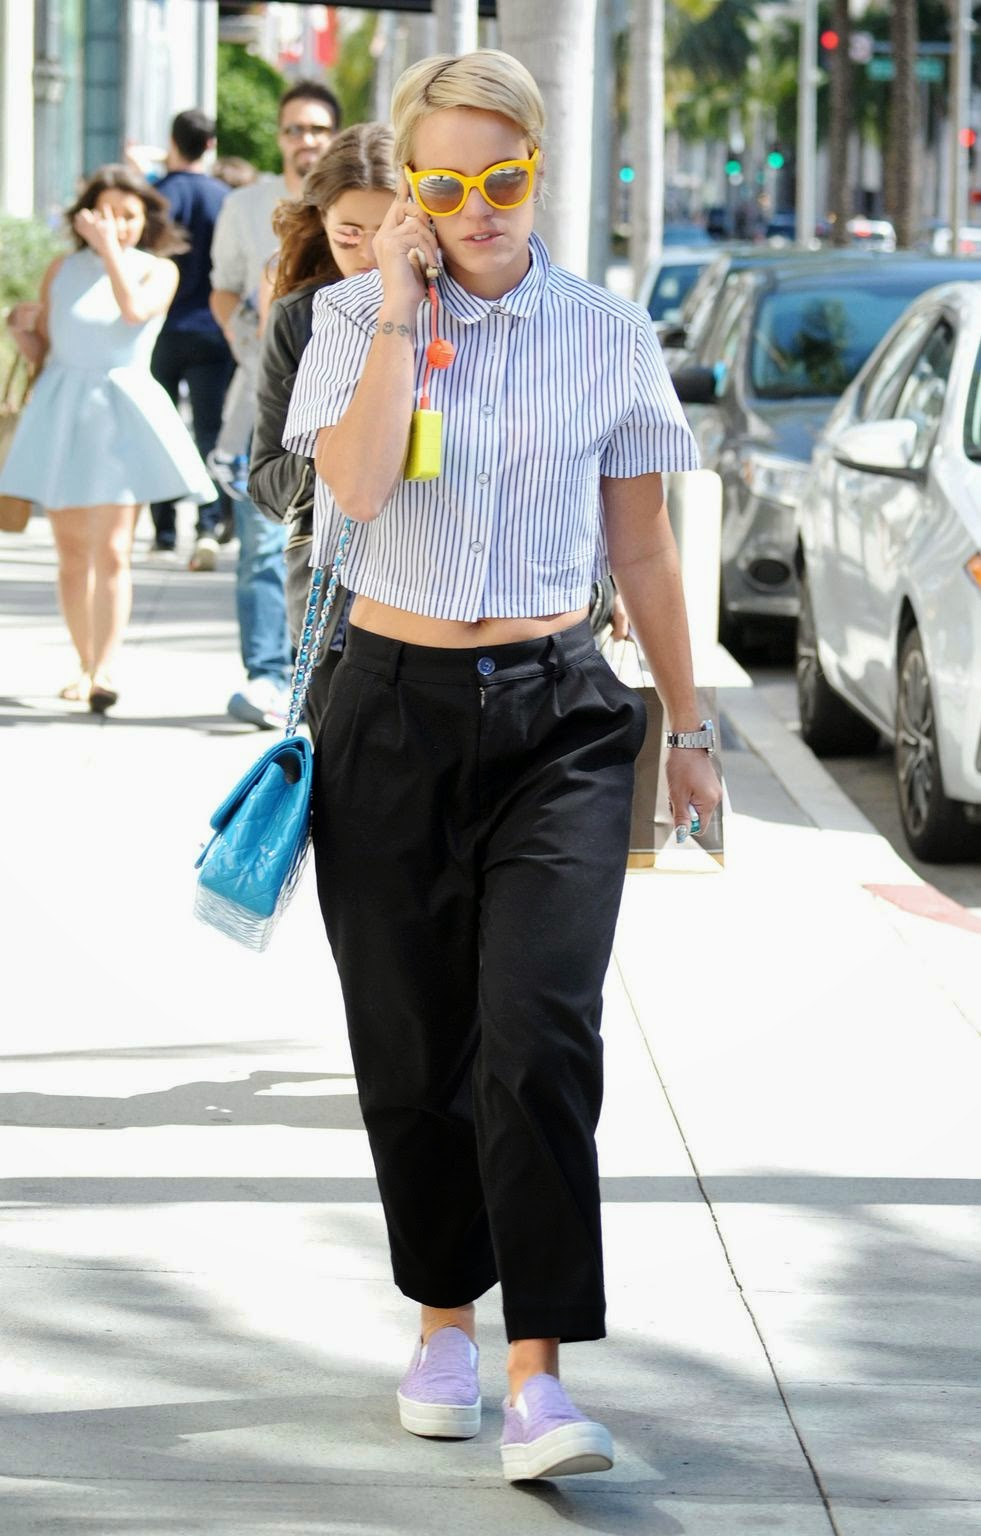 Singer-songwriter, Actress, Presenter @ Lily Allen - Shops in Los Angeles